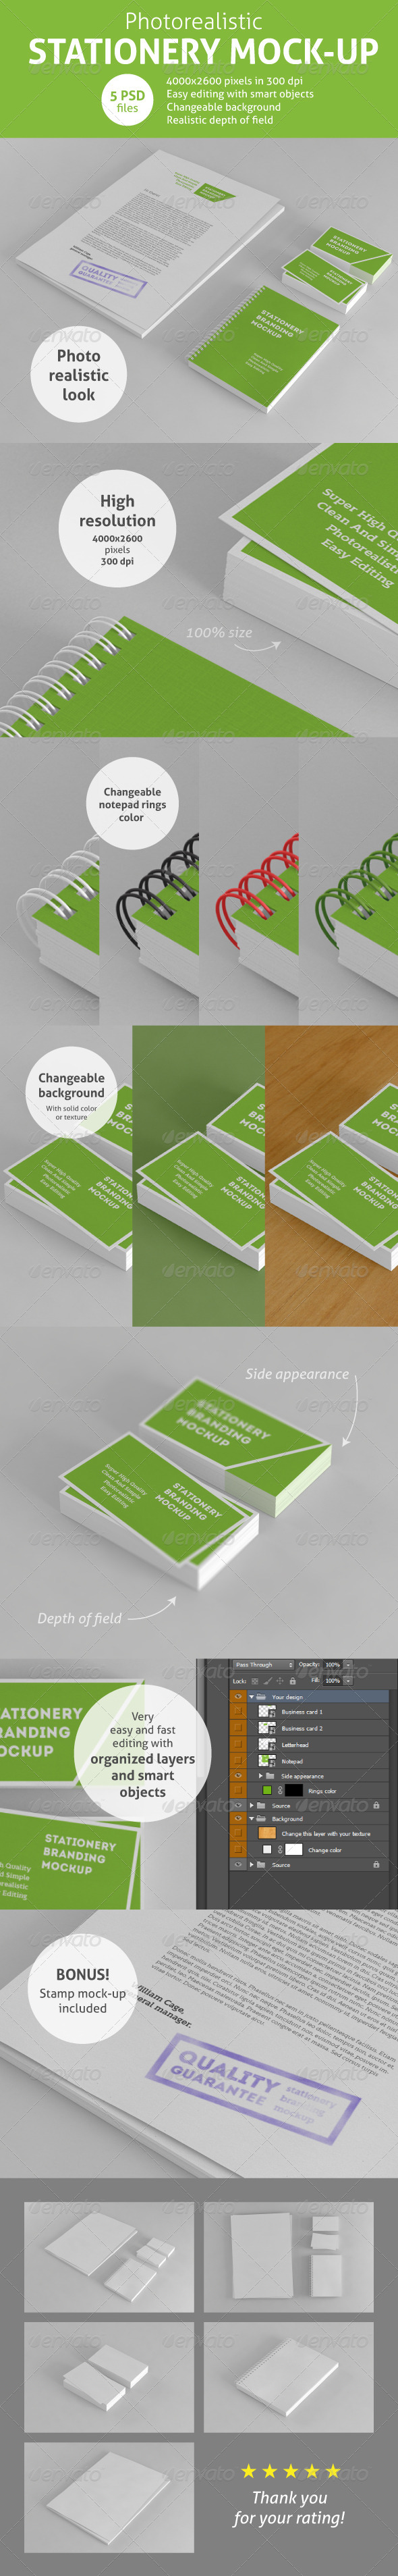 GraphicRiver Photorealistic Stationery Branding Mock-Up 6068858